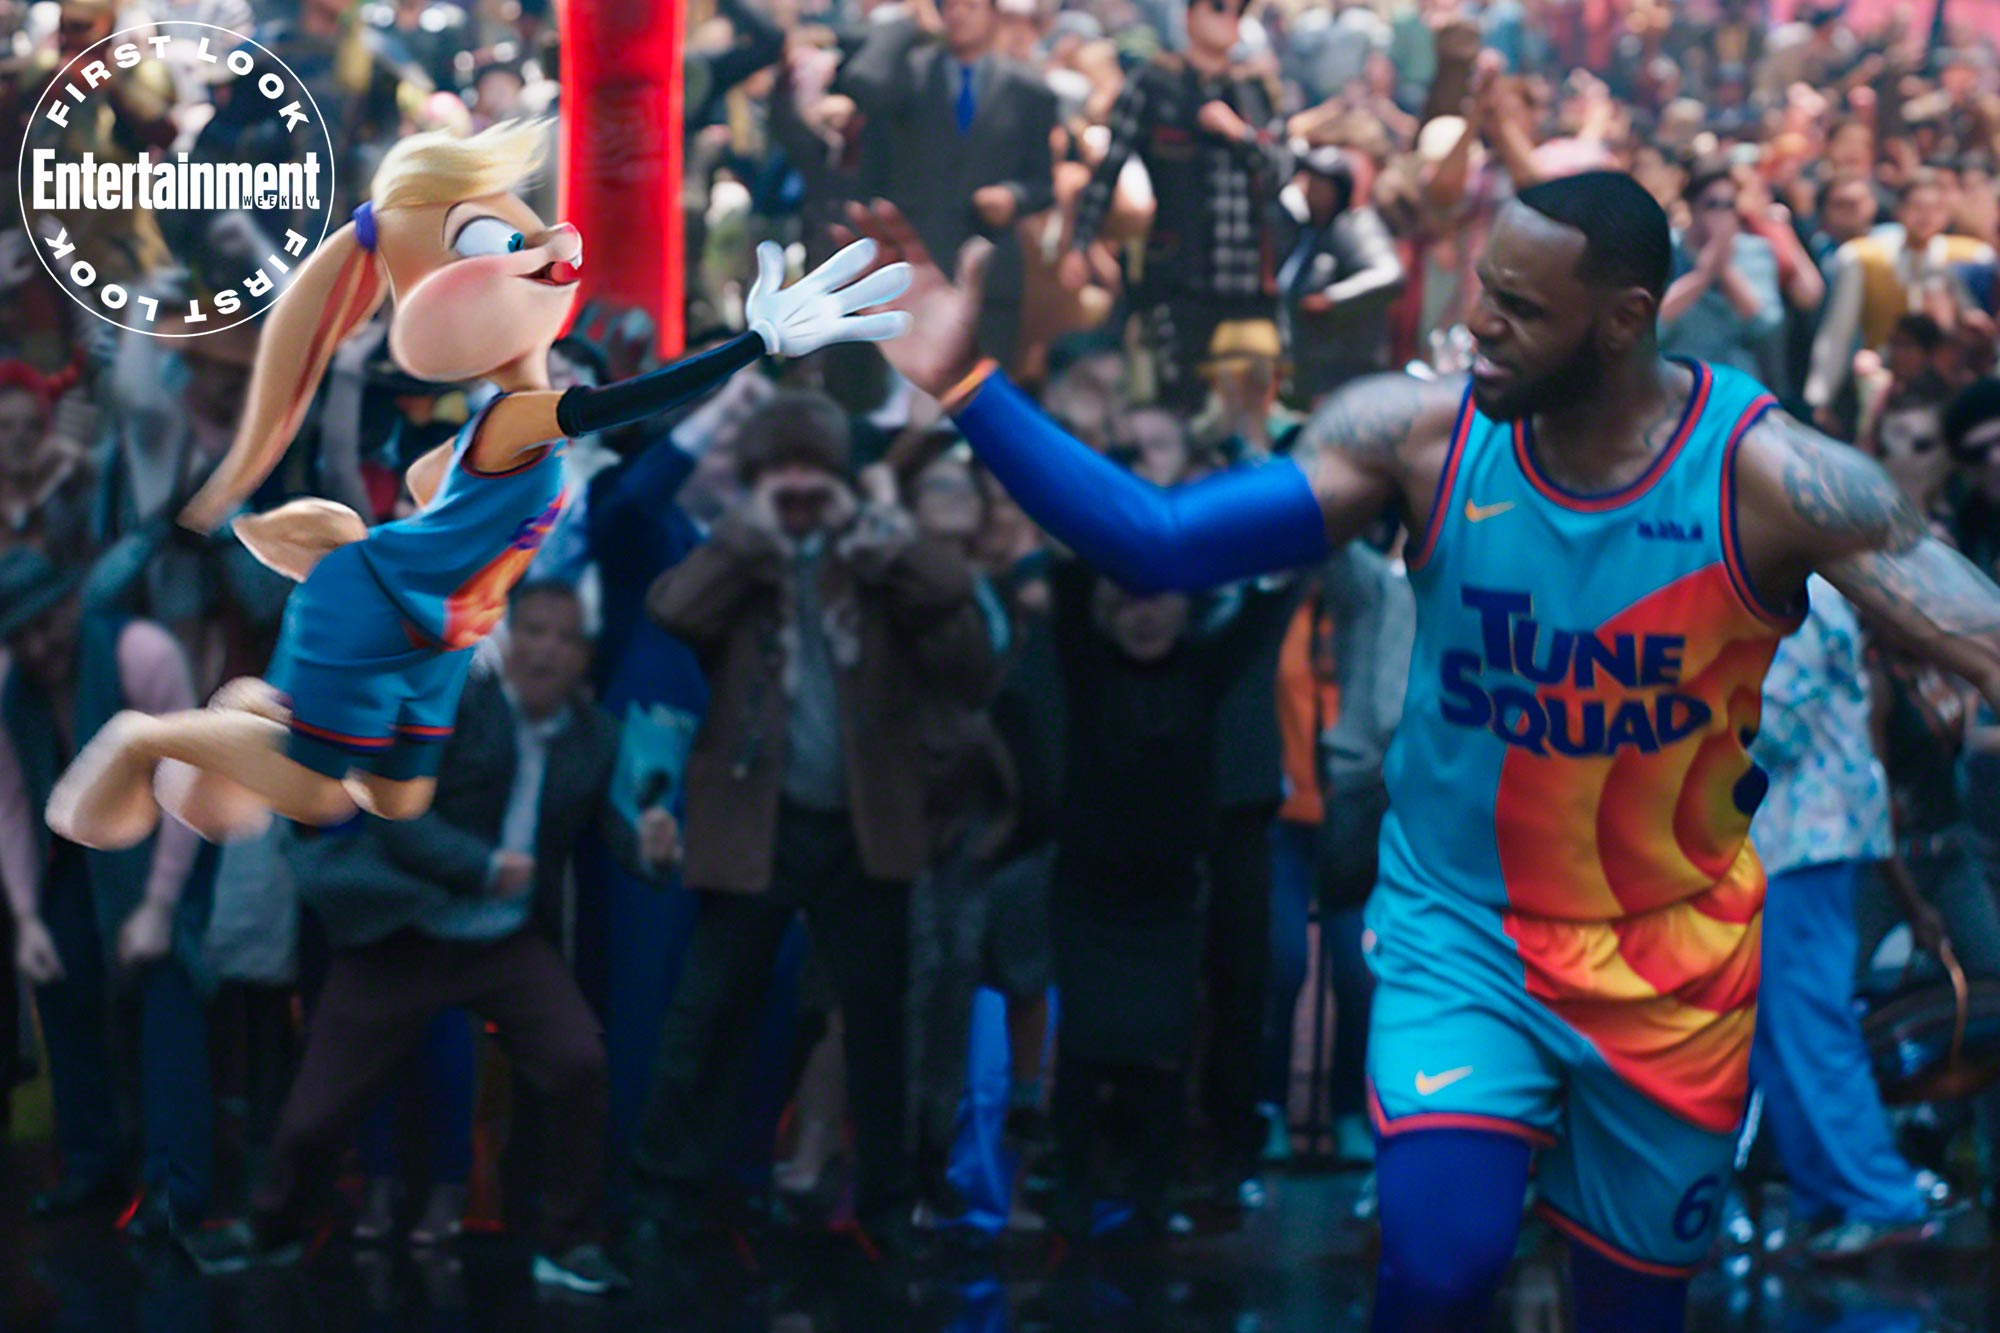 Lola Bunny - Space Jam - A New Legacy - Entertainment Weekly